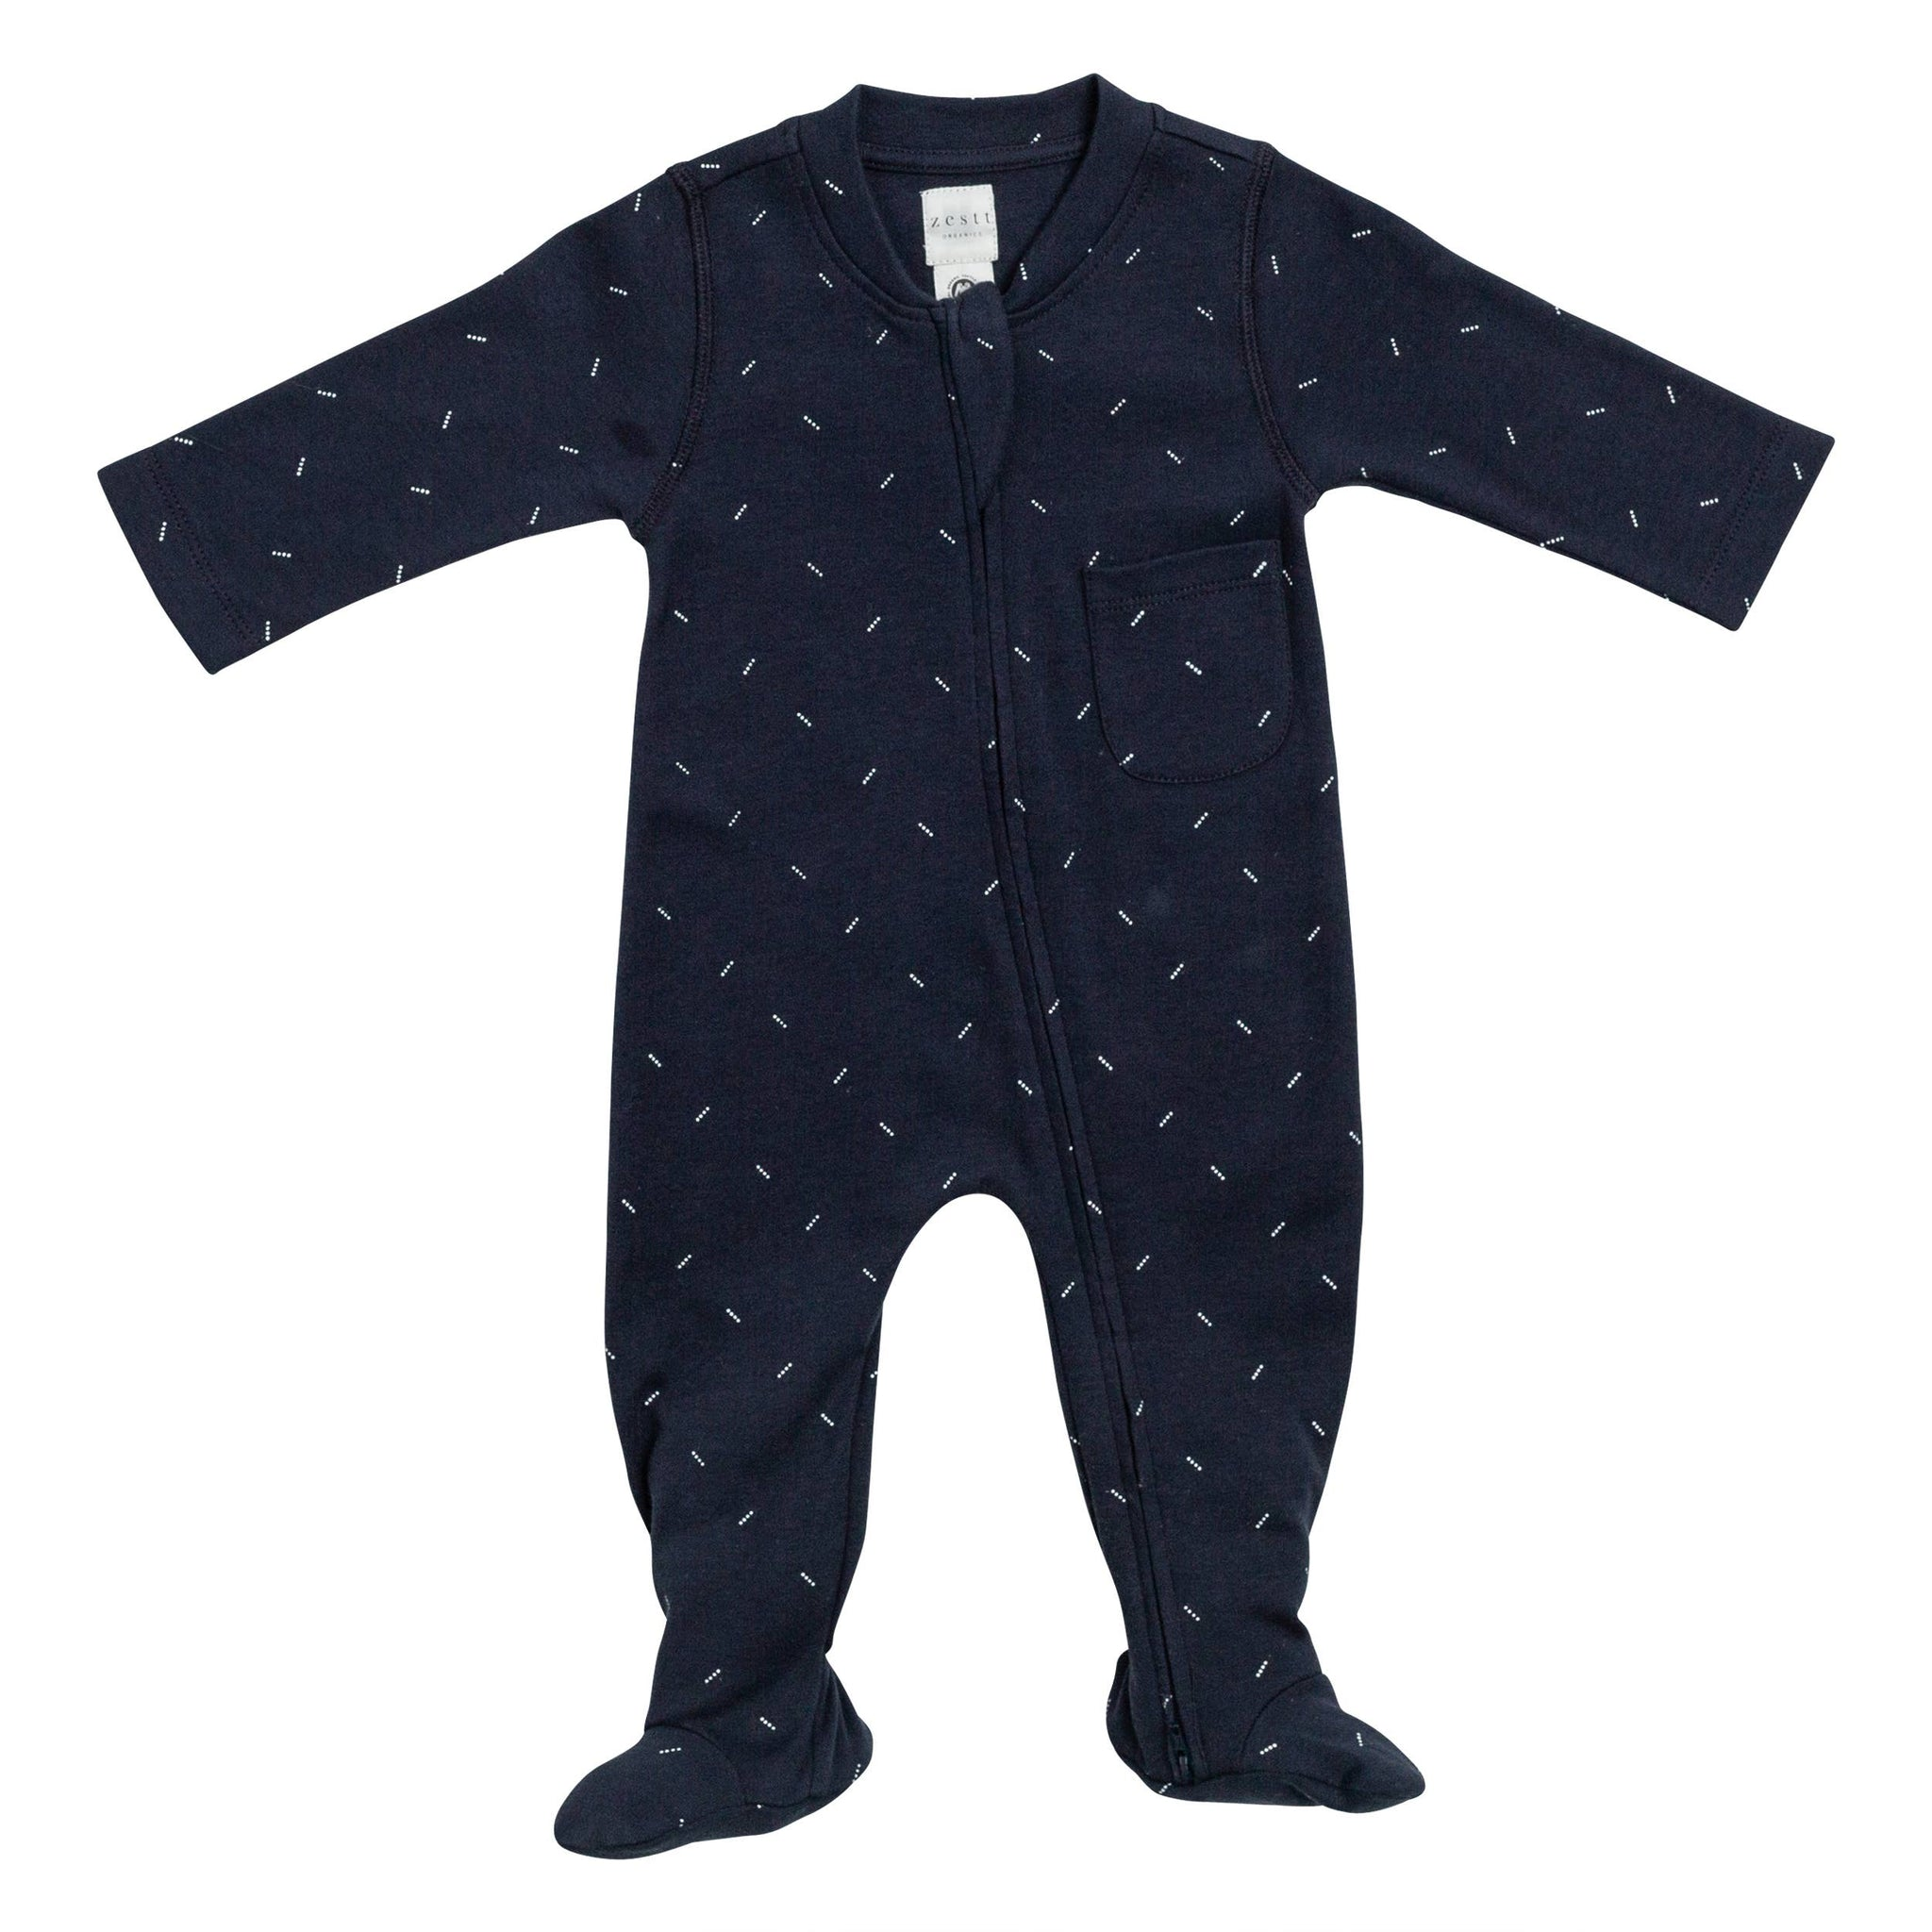 Zestt - ajj x zestt Organic Cotton Everyday Sleeper - Four Dot